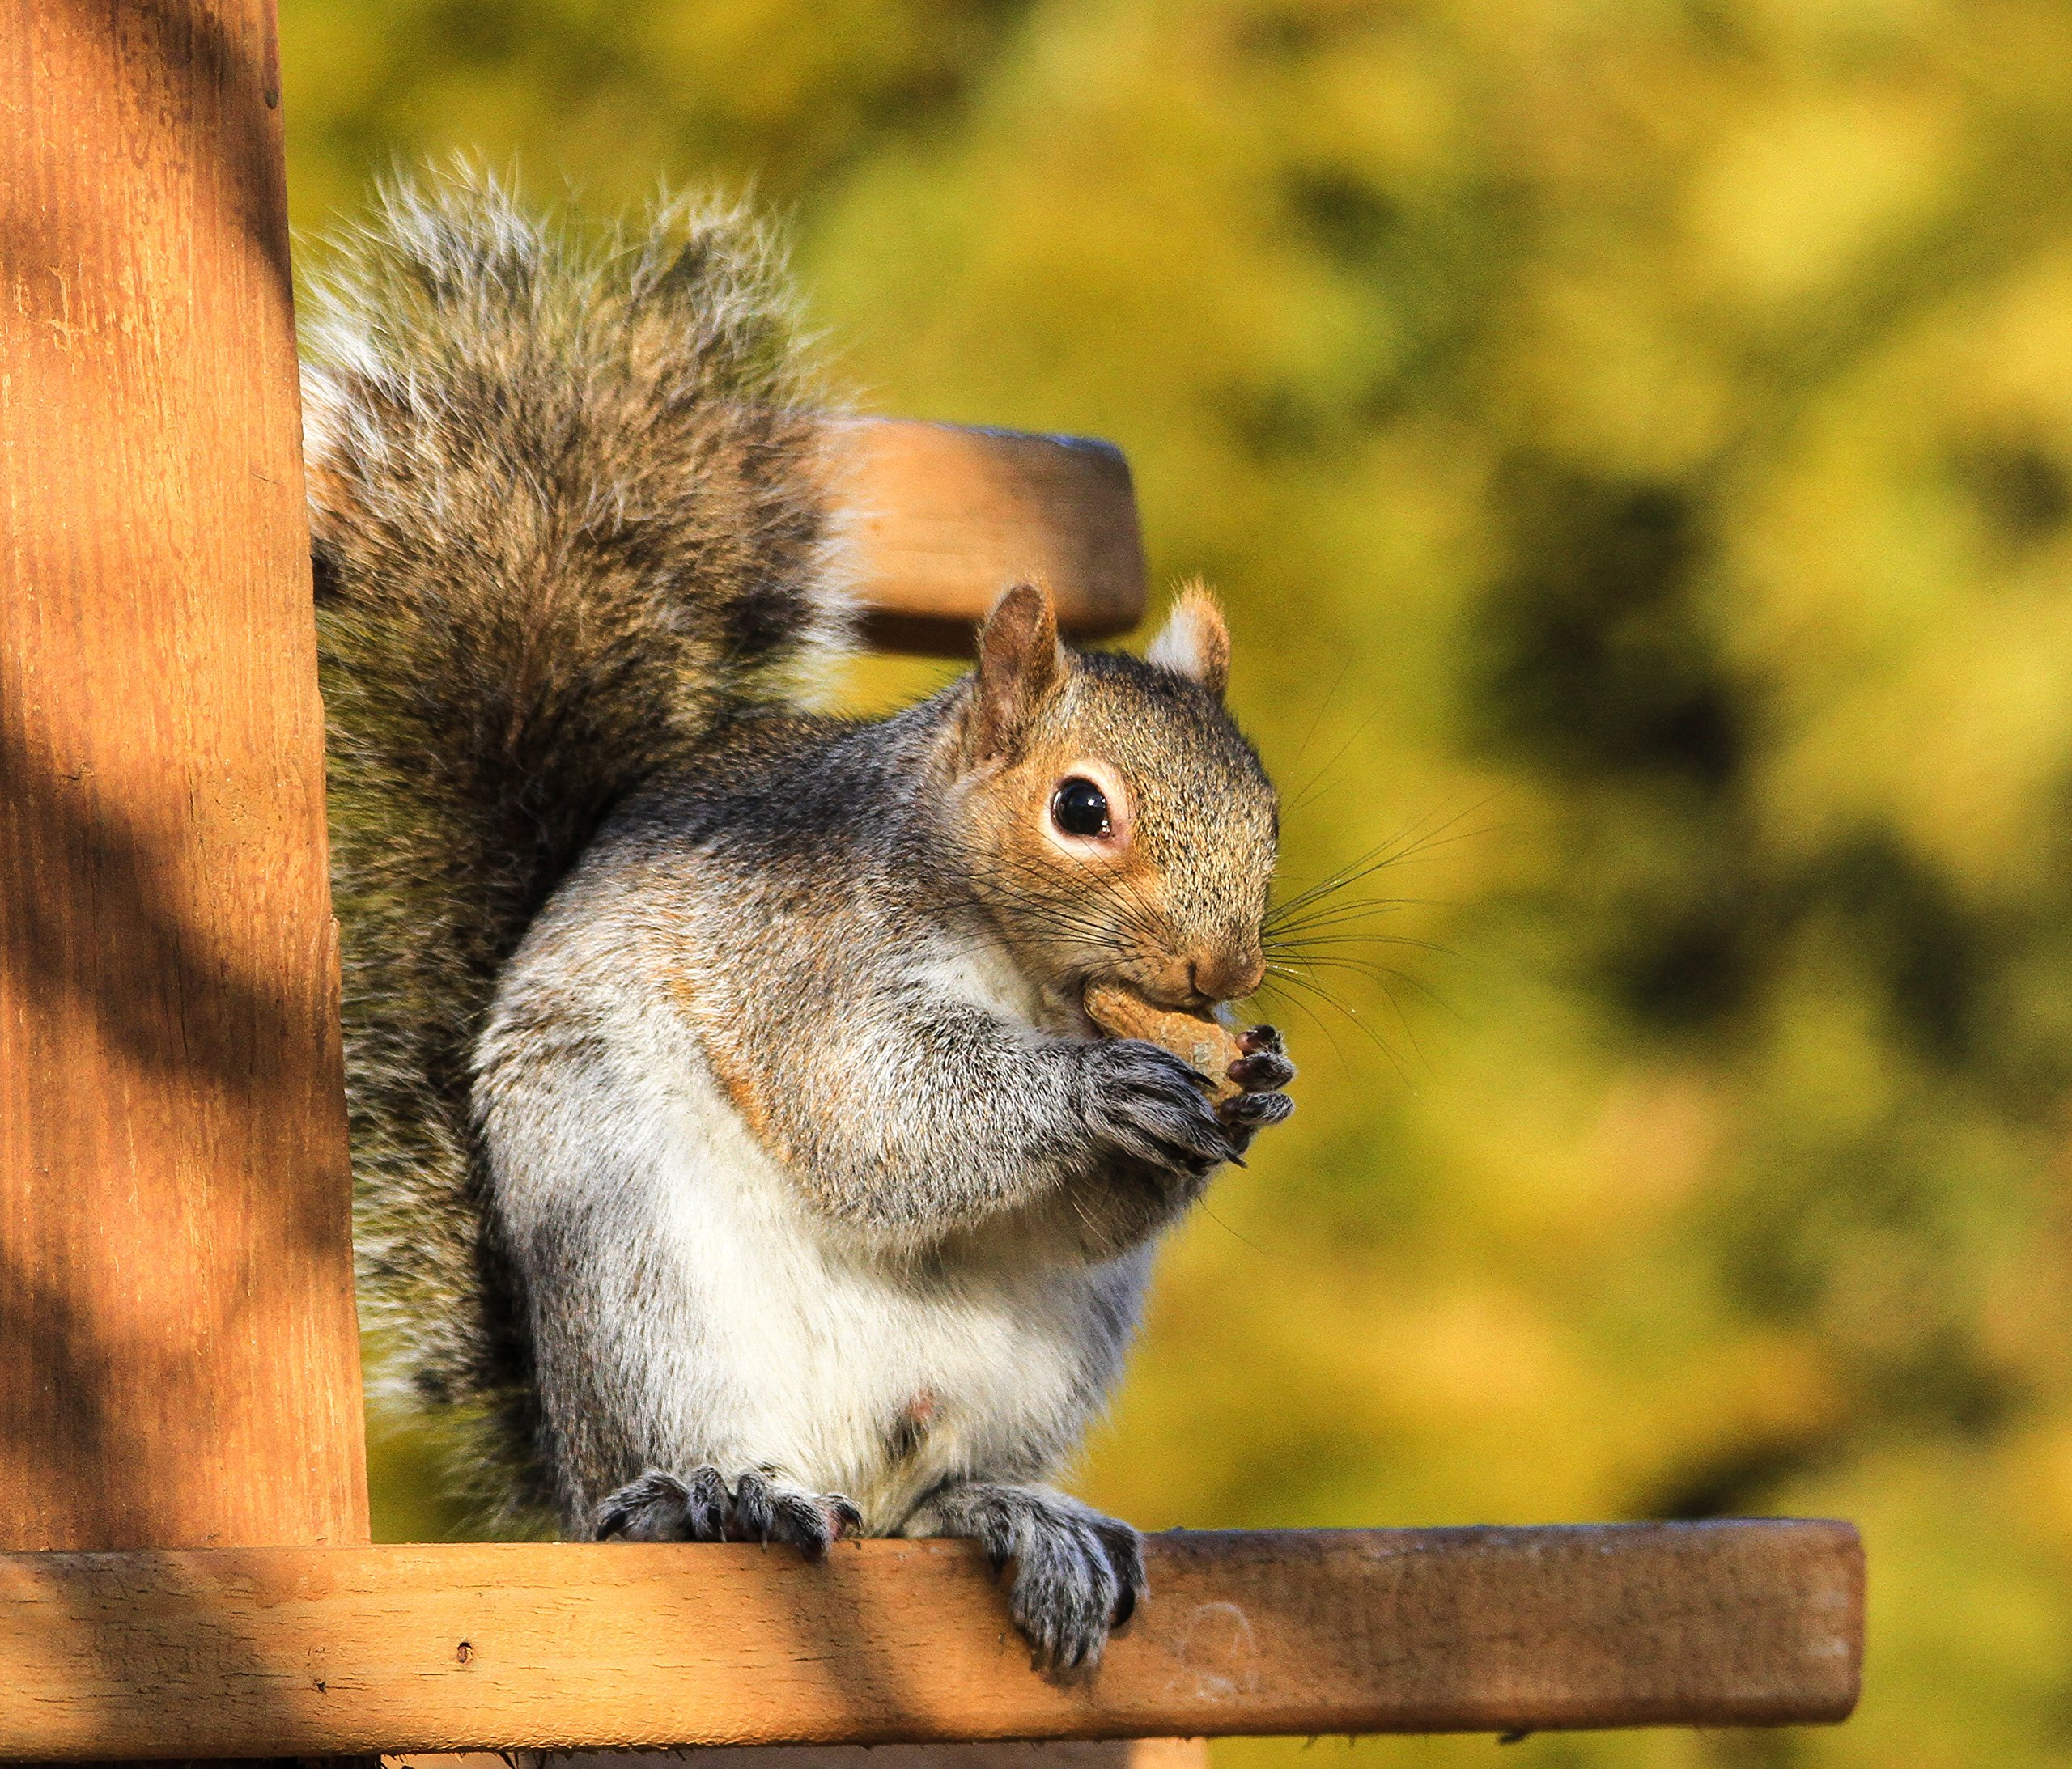 Virginia Peanuts Bulk Inshell Animal Peanuts for Squirrels, Birds, Deer, Pigs and a Wide Variety of Wildlife, 50 Lbs Total/Raw Peanuts/Bulk Nuts/Blue Jays/Cardinals/Woodpeckers/Parrots/Doves by WAKEFIELD PEANUT COMPANY A TRADITION OF EXCELLENCE SINCE 1965 (Image #2)